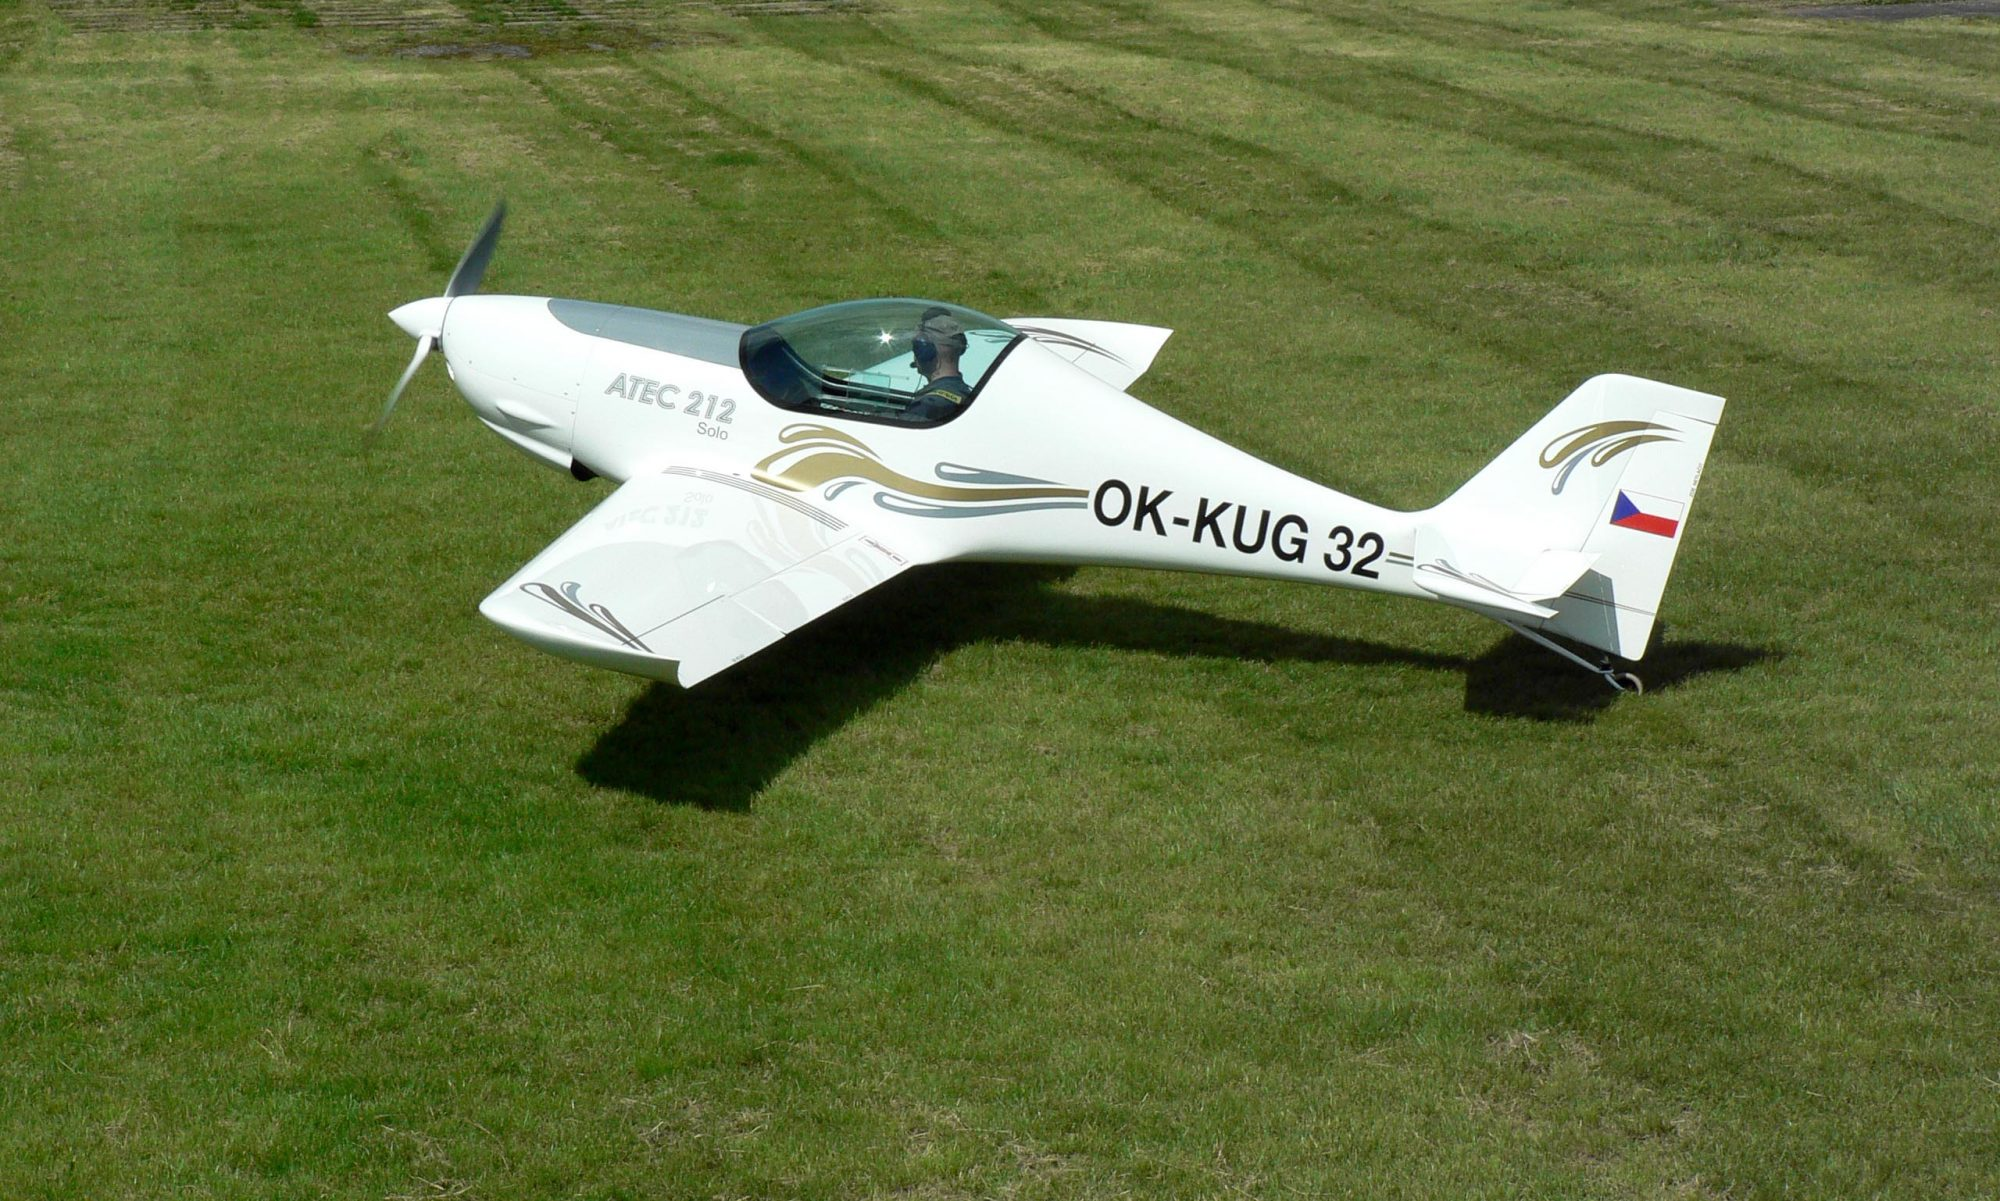 ATEC Aircraft France